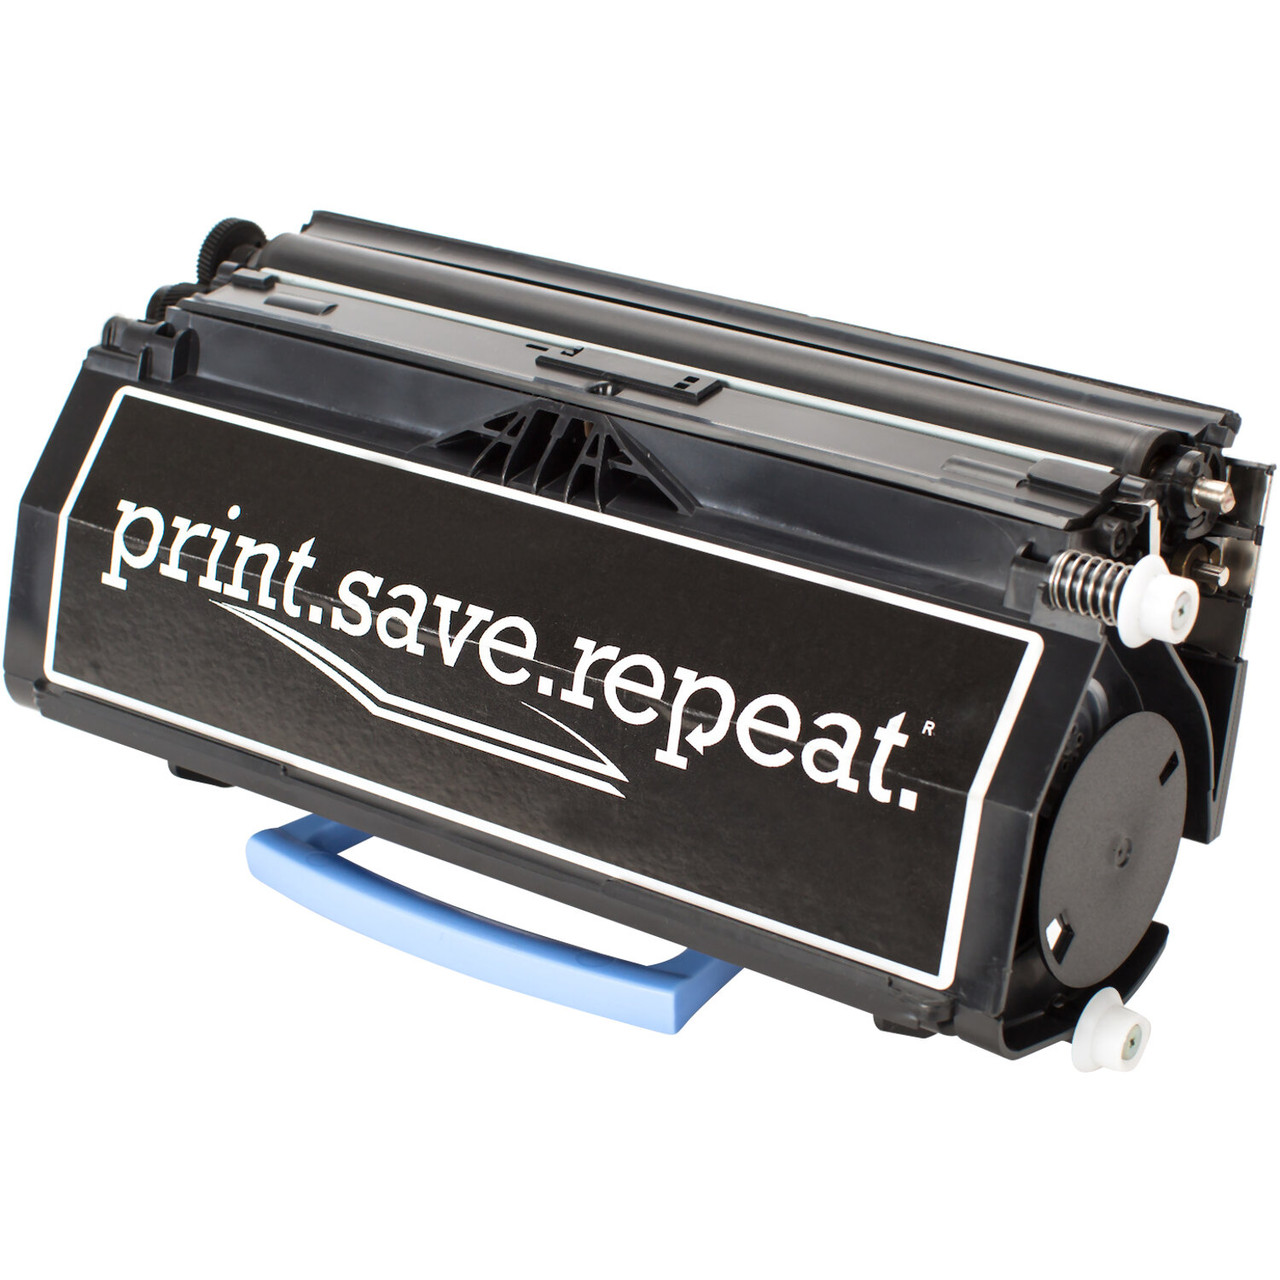 3,000 Pages Print.Save.Repeat ST9620 Source Technologies STI-204513 Remanufactured MICR Toner Cartridge for ST9612